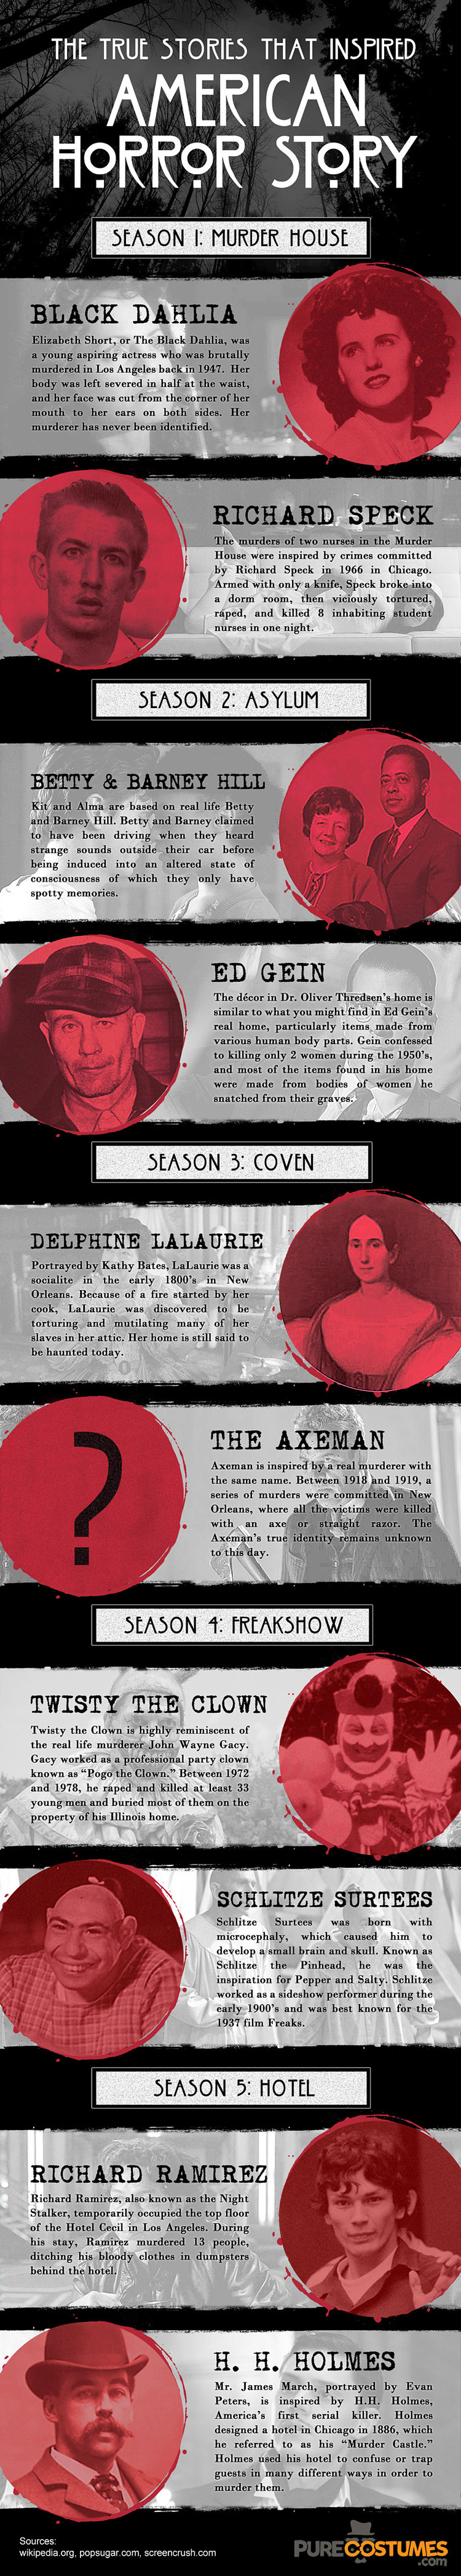 The True Stories that Inspired AMERICAN HORROR STORY - Infographic2